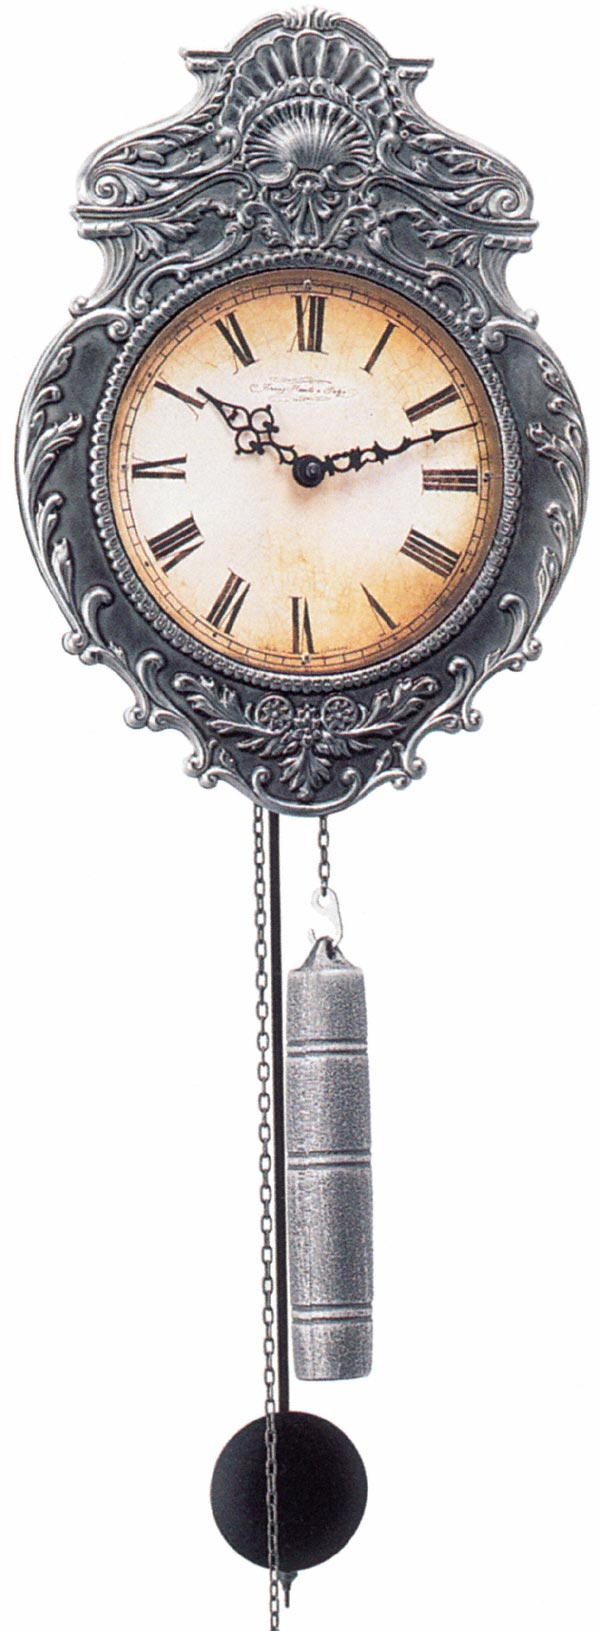 70823 000701 aachen weight driven antique style wag on wall hermle 70823 000701 aachen weight driven antique style wag on wall clock antique pewter amipublicfo Images